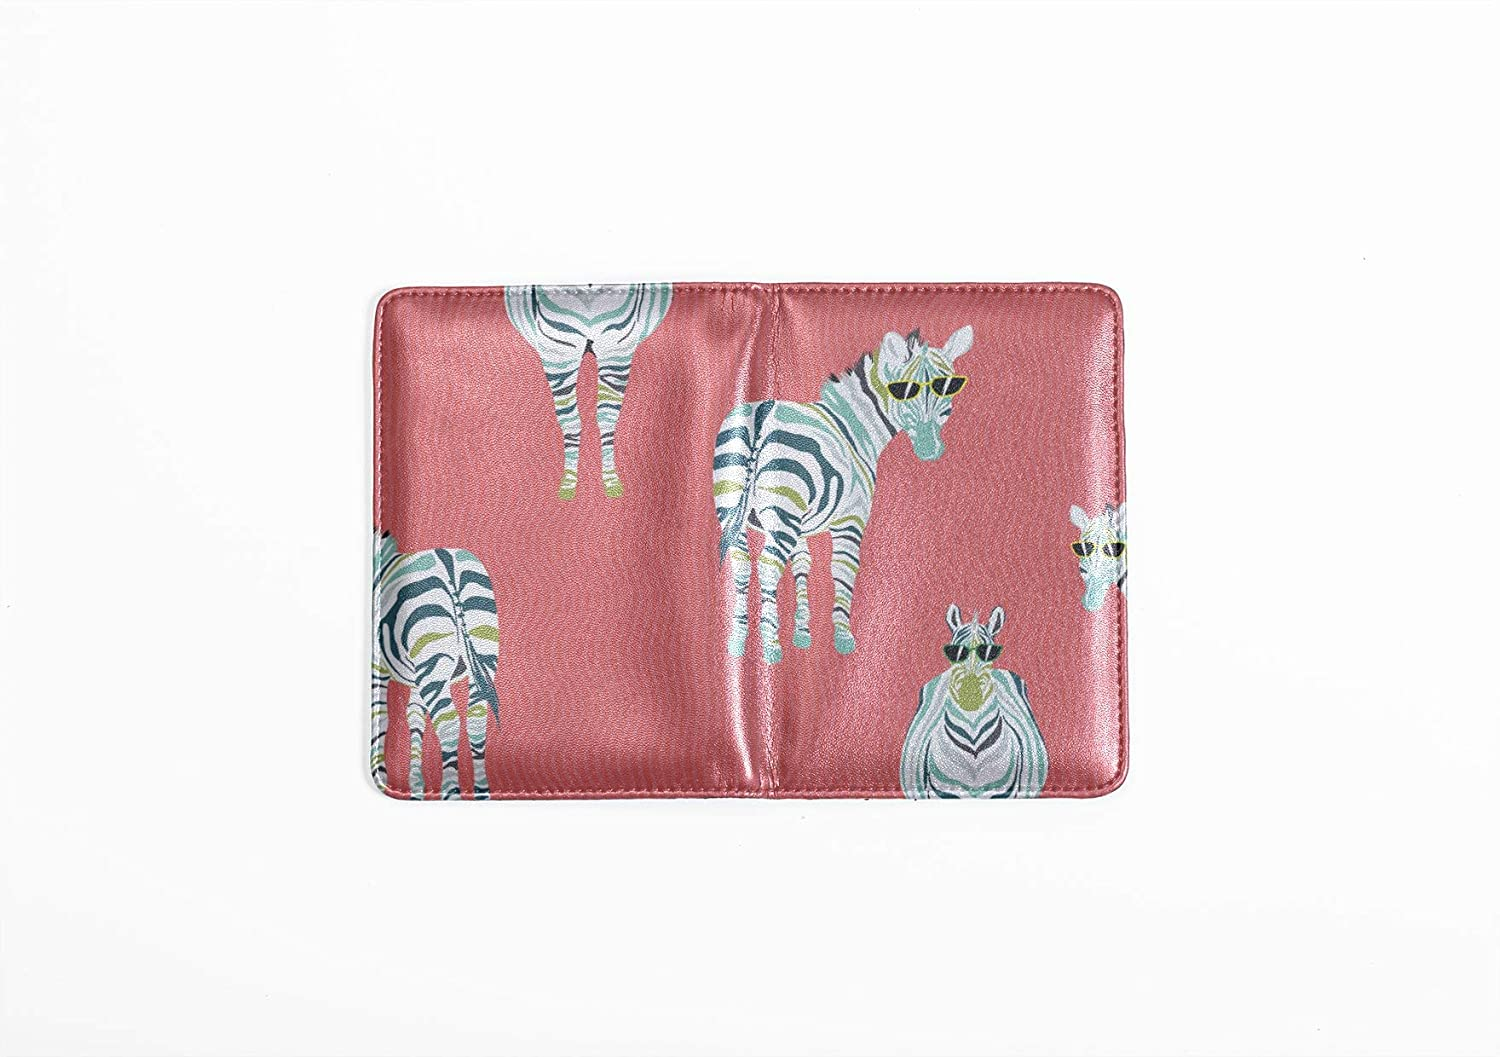 Leather Passport Holder Cover Case Cute Carton Little Zebra Animal Stylish Pu Leather Travel Accessories Passport Cover Women For Women Men